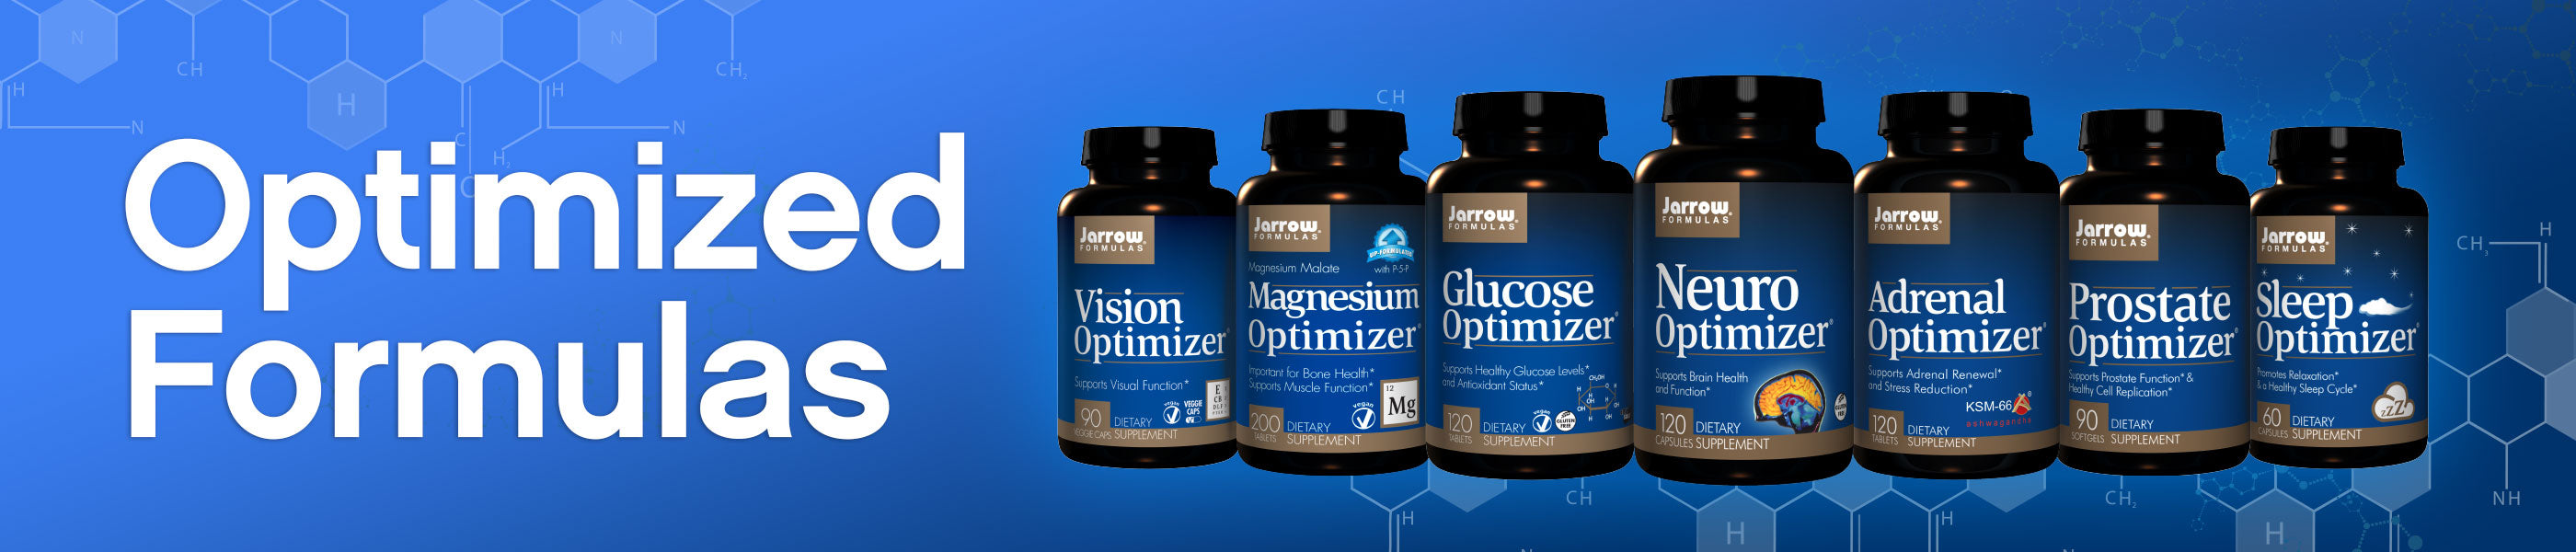 Optimized Formulations header image